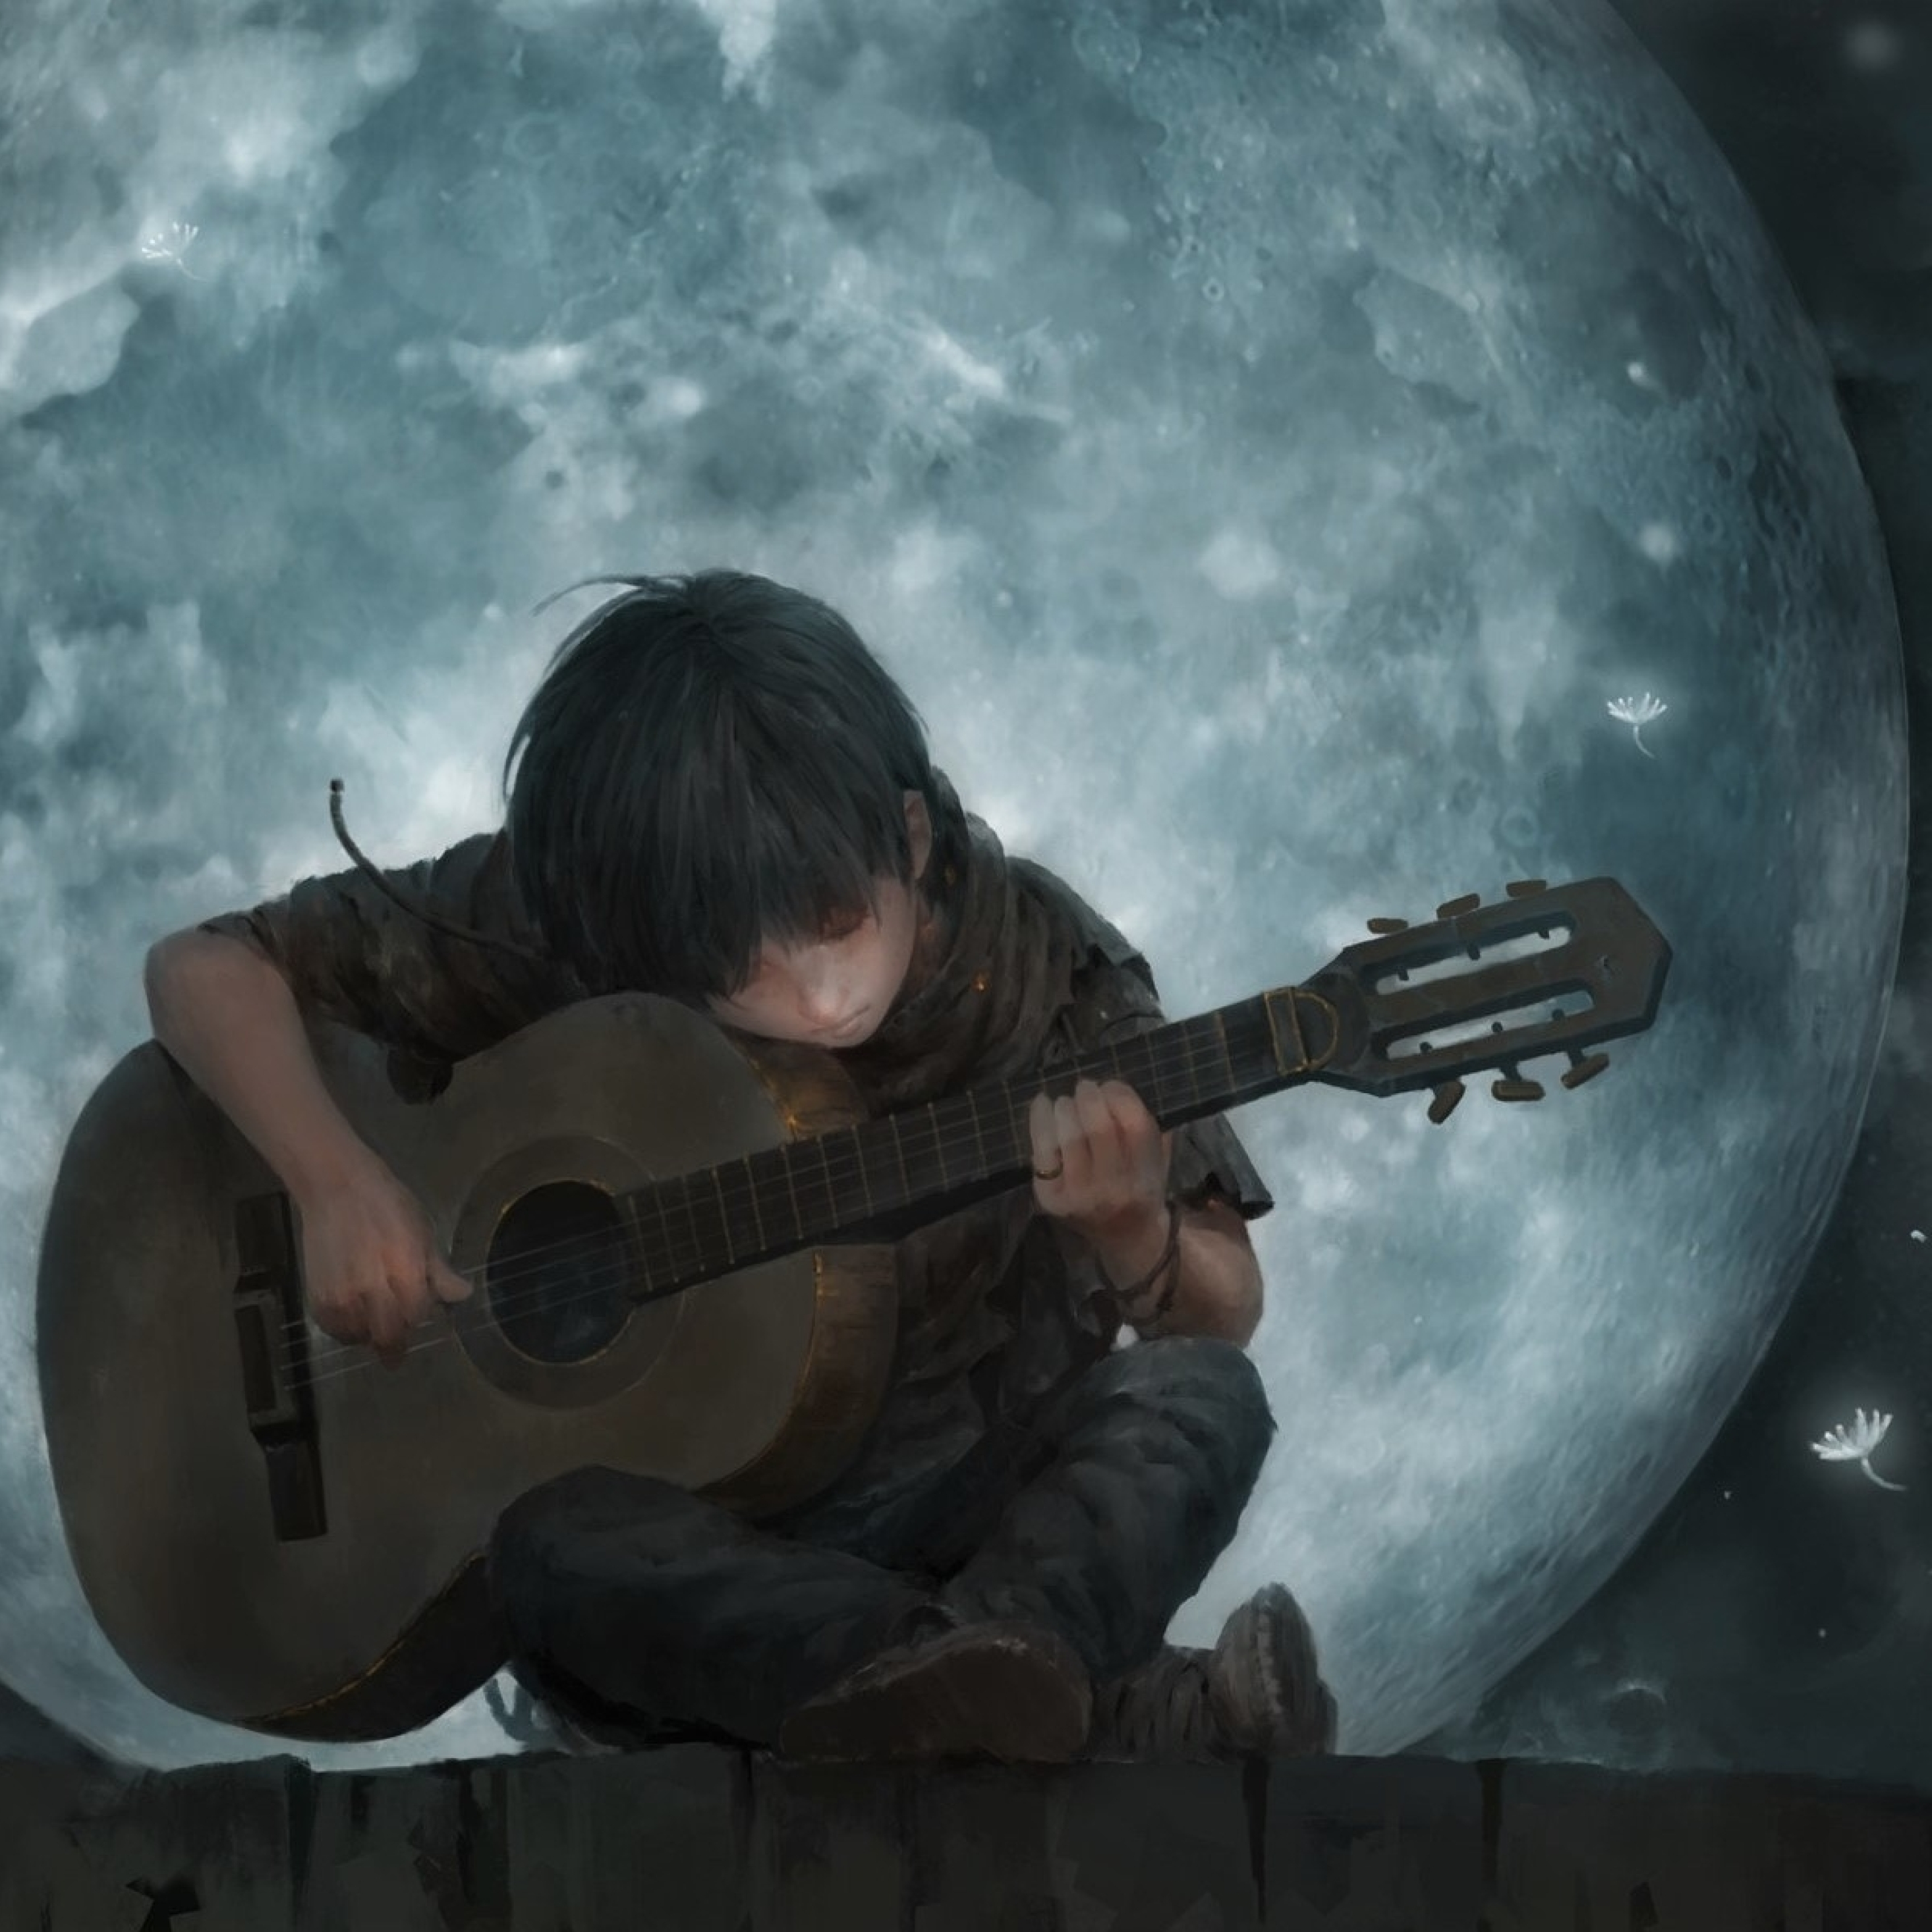 Play Guitar Iphone Wallpaper: Little Boy On Full Moon Night Playing Guitar Art, Full HD